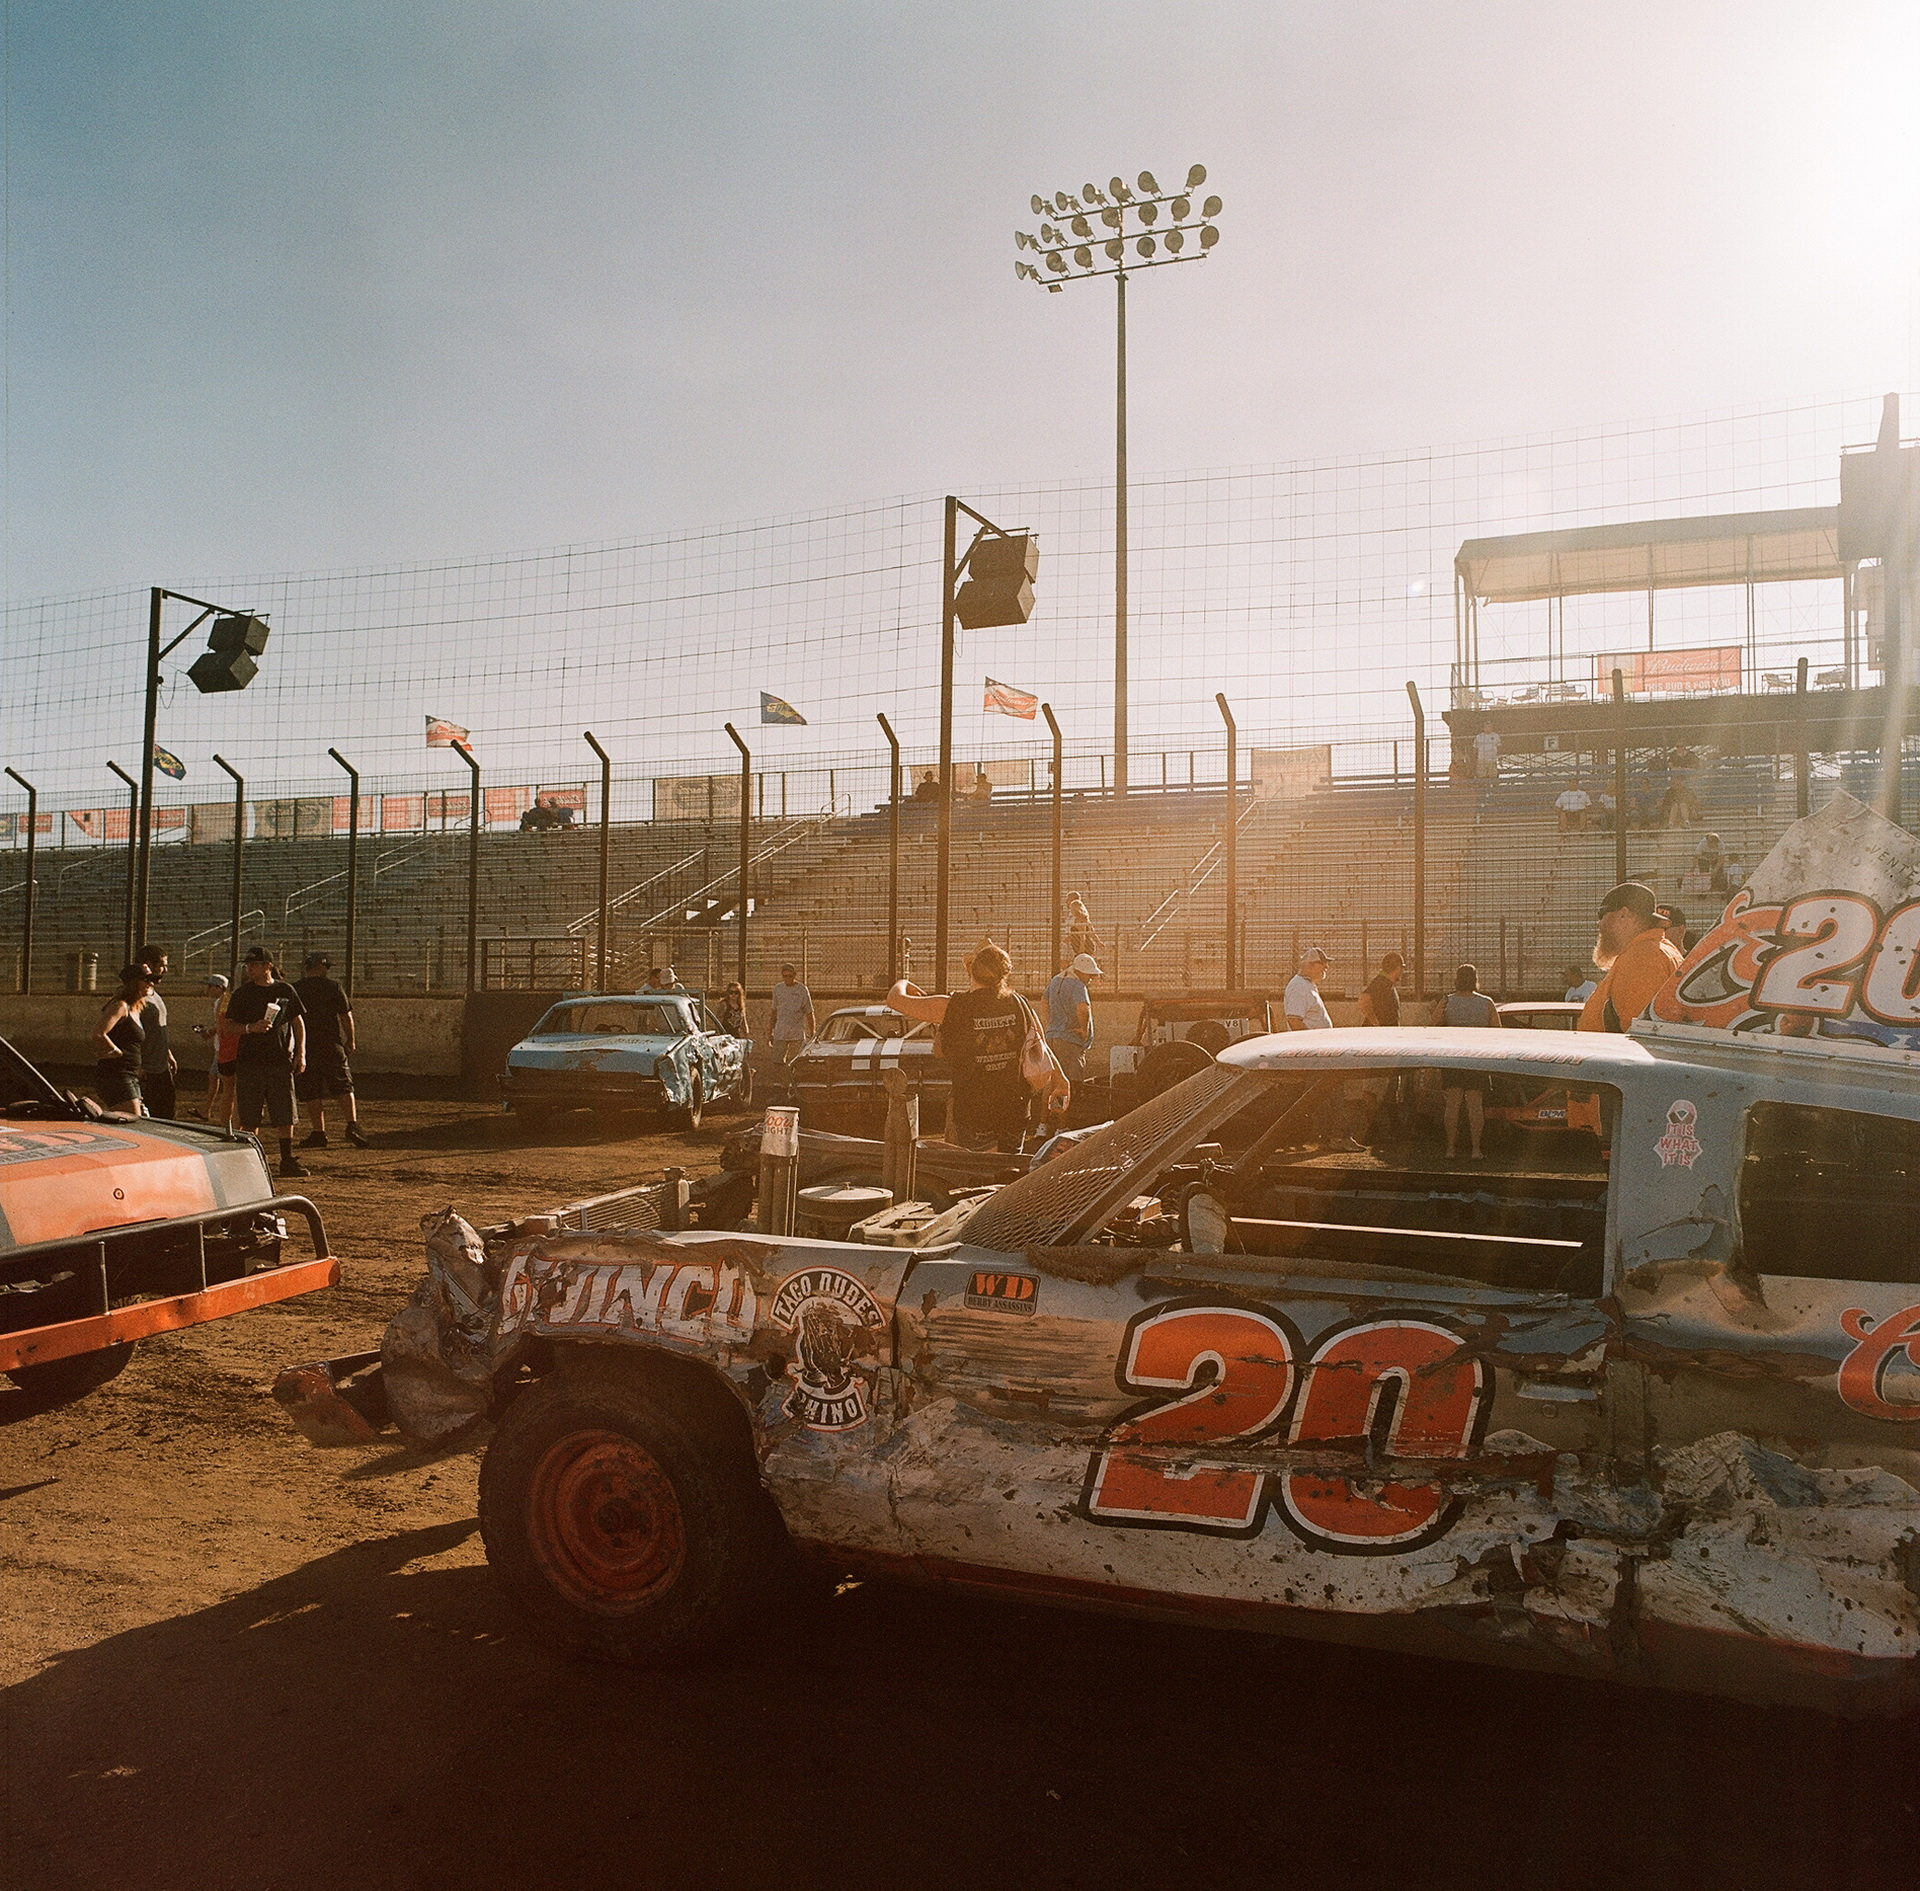 Rollei Digibase CN200 Pro 120 perris auto speedway